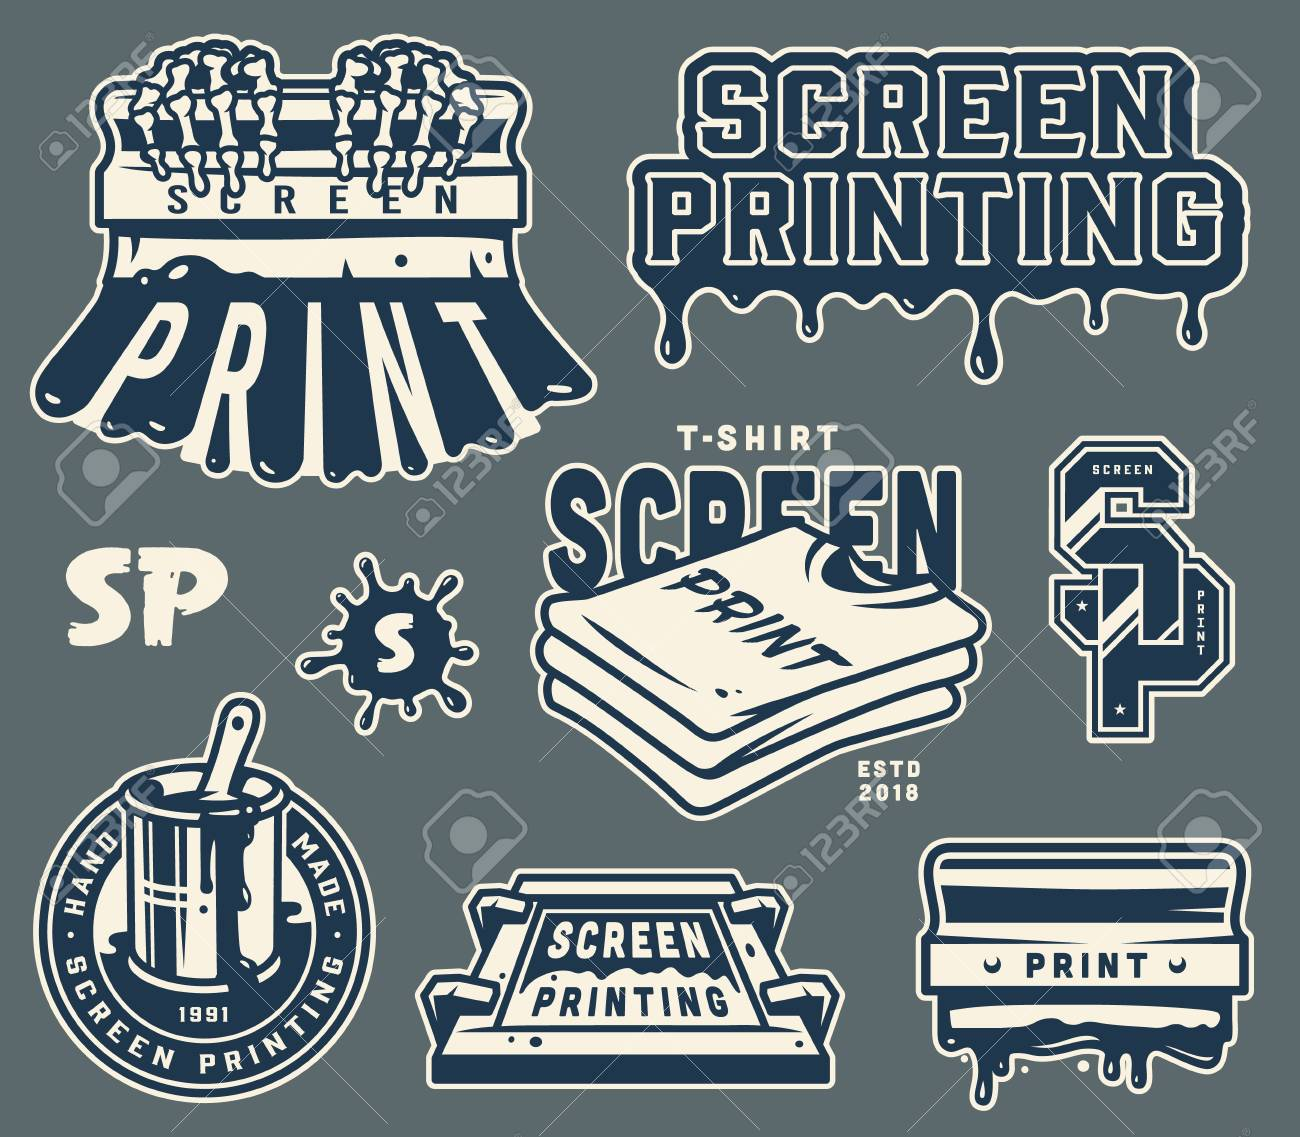 Vintage light screen printing elements set with squeegee shirts silkscreen brush in bucket label letterings isolated vector illustration - 109849393